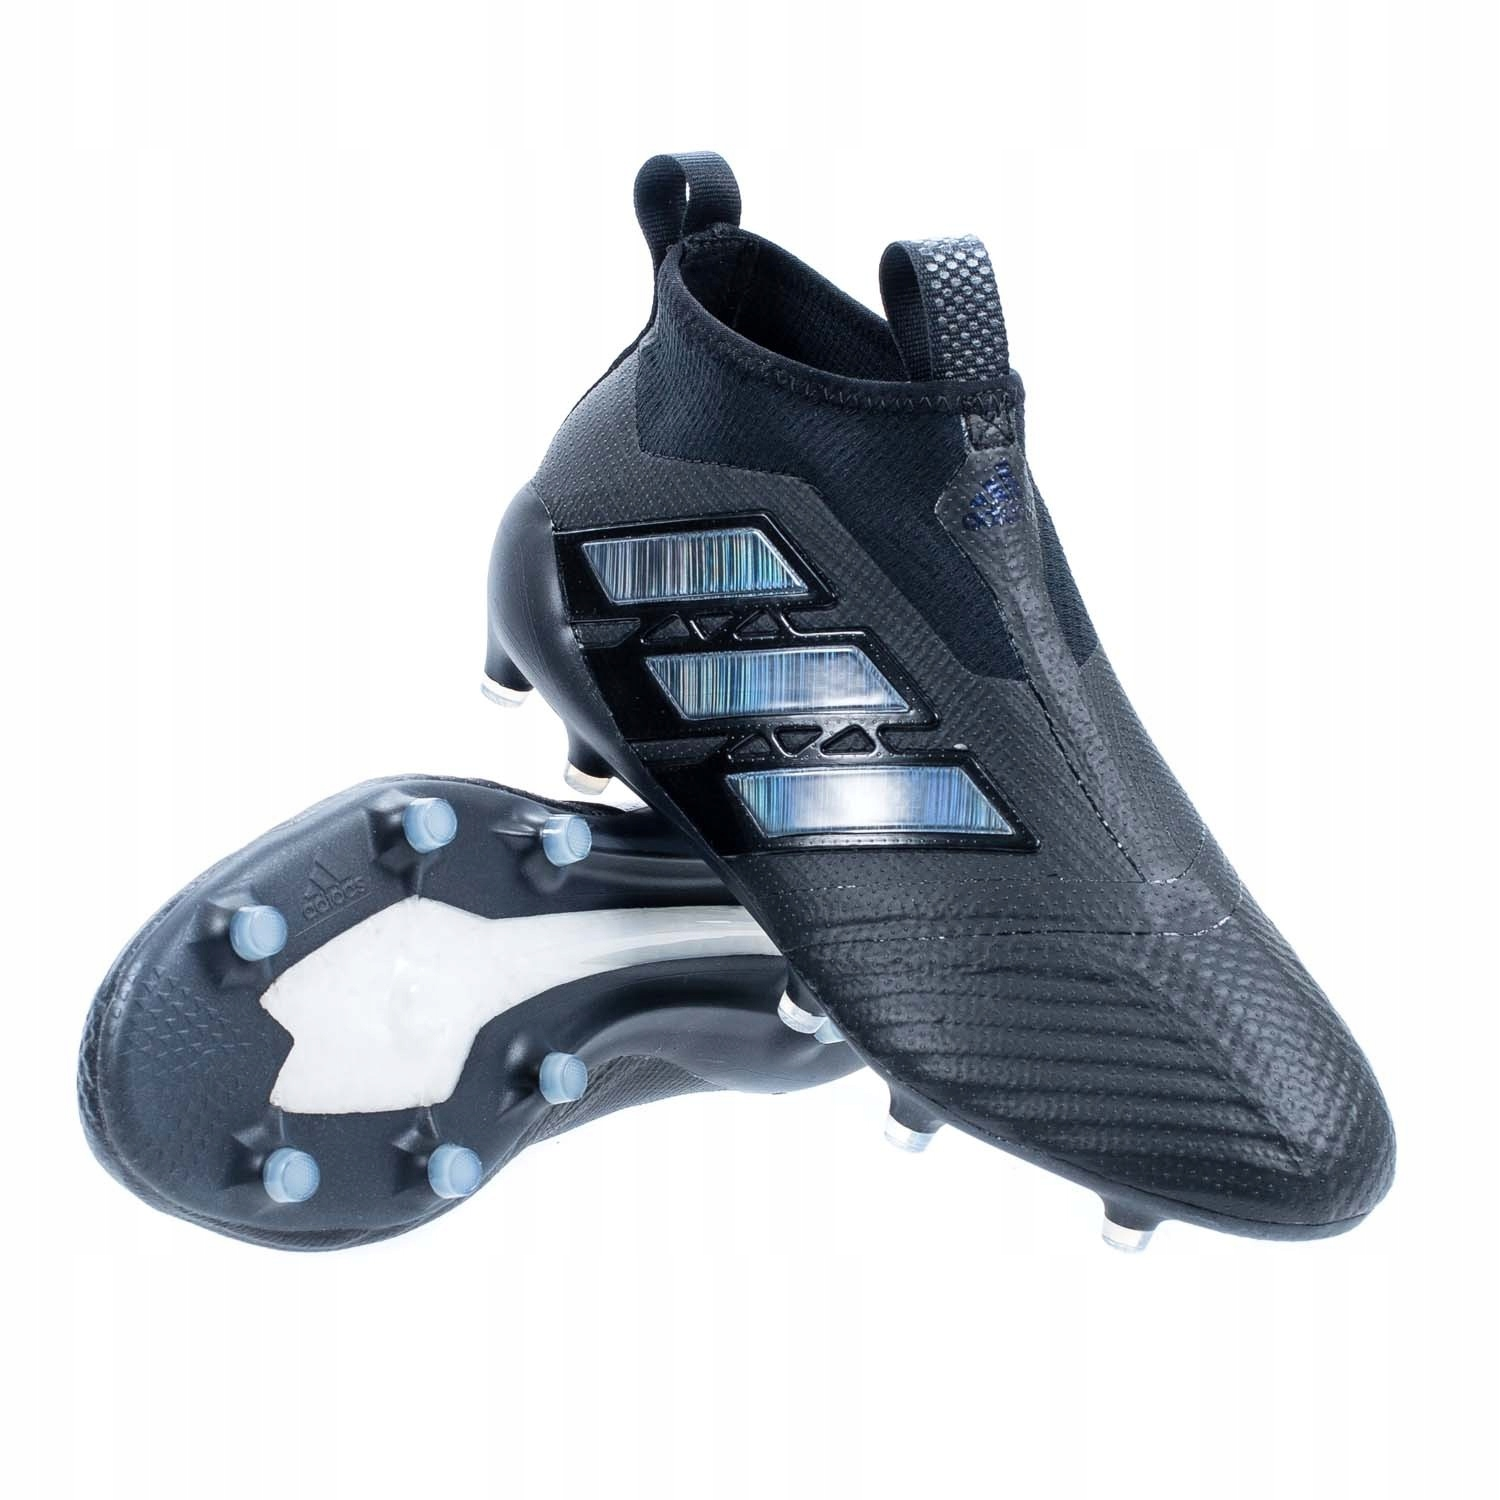 finest selection 1f809 470c1 adidas ACE 17+ Purecontrol FG S77166 r.42 - 7765163871 ...